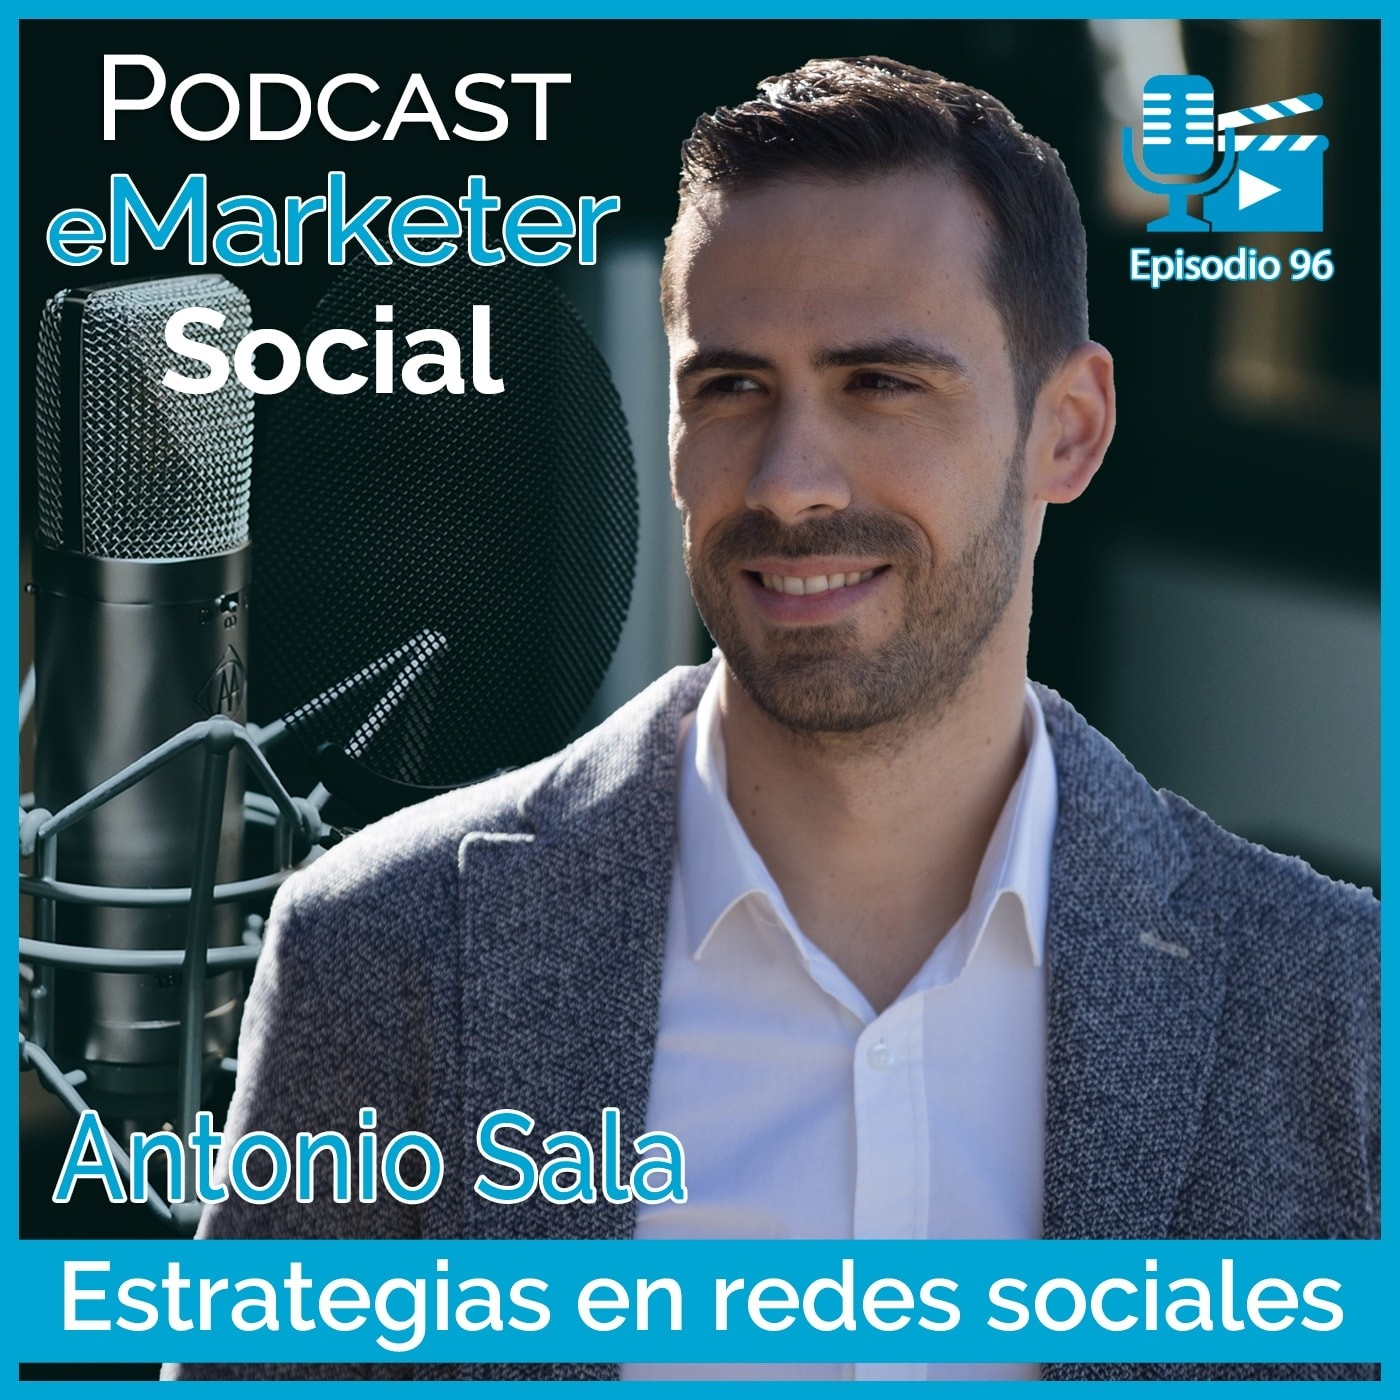 096 Antonio Sala community manager & copywriter en Podcast eMarketerSocial